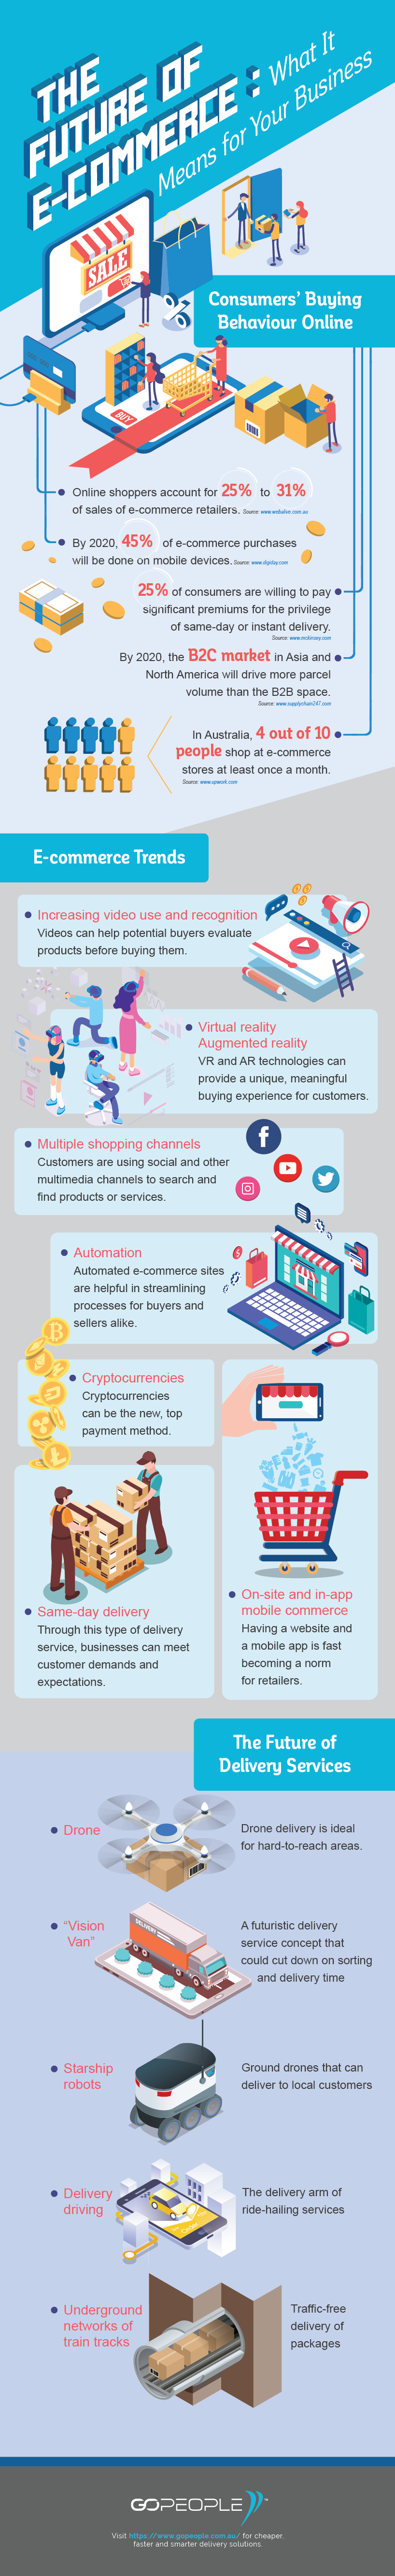 The-Future-of-E-Commerce-What-It-Means-for-Your-Business-Infographic-Ver-2